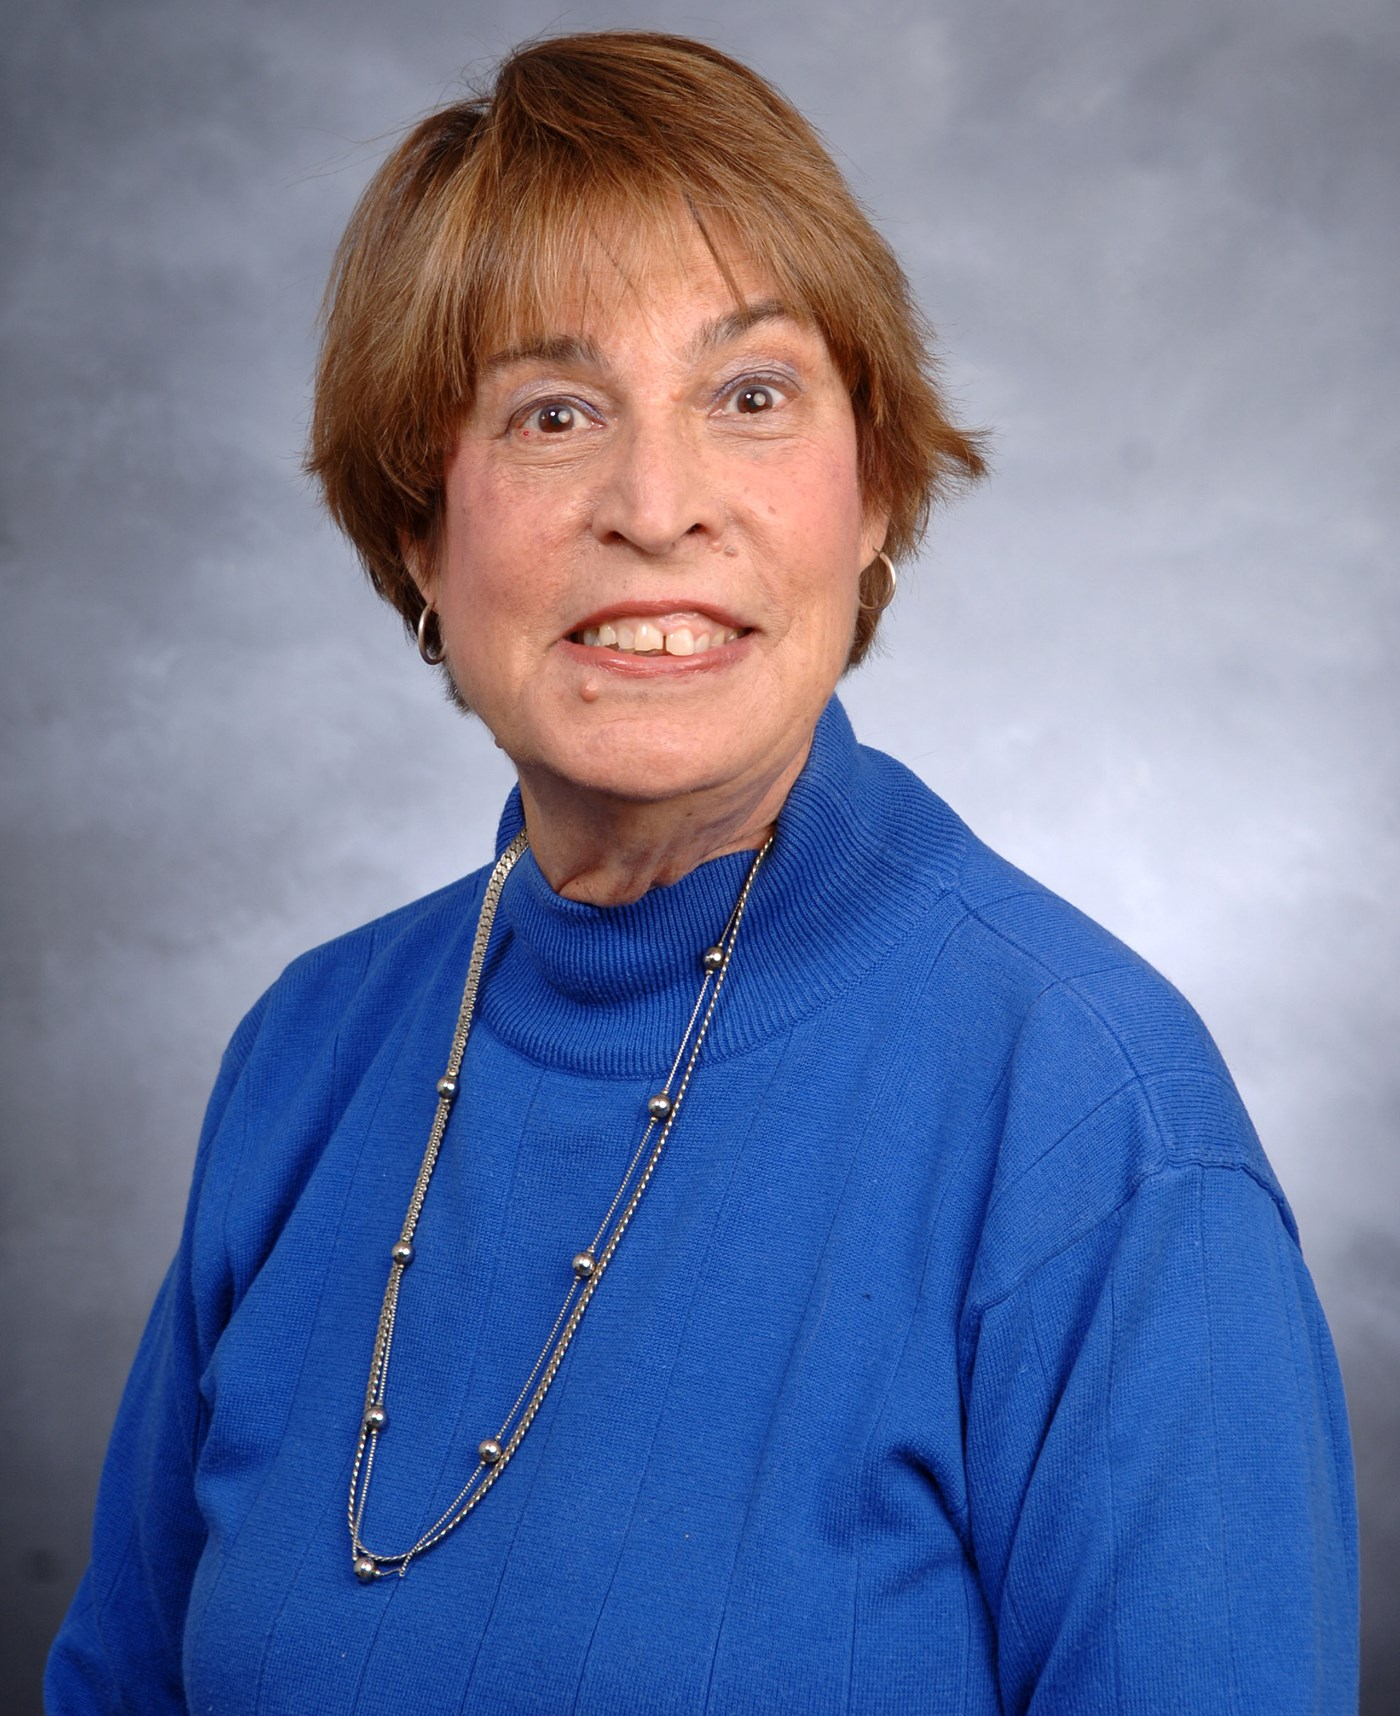 Shellie Simons is an Associate Professor in the Susan and Alan Solomont School of Nursing at UMass Lowell.